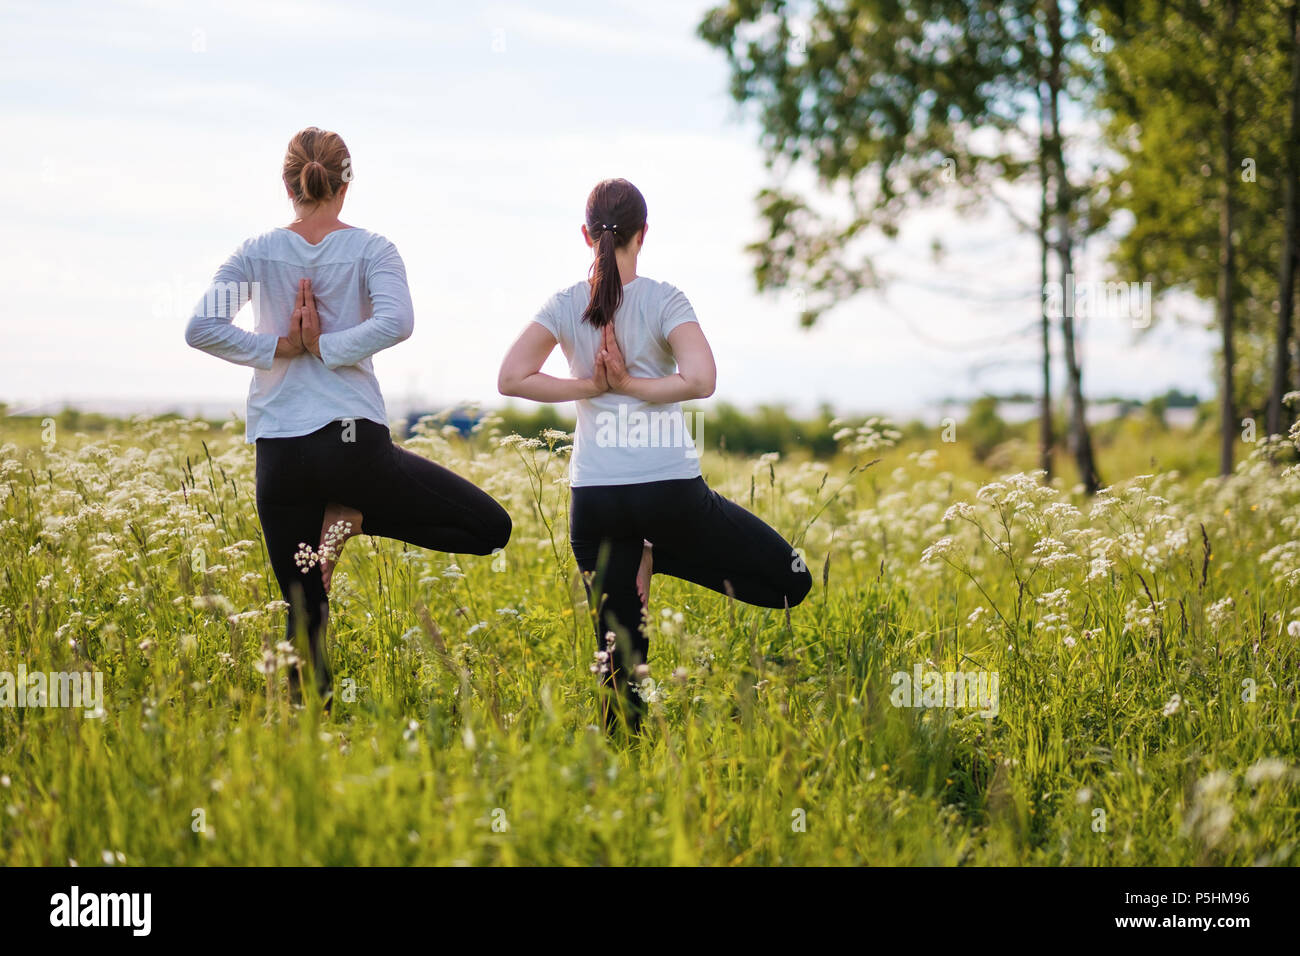 Two women le doing yoga exercises, standing on one leg at outdoors in nature park. Stock Photo